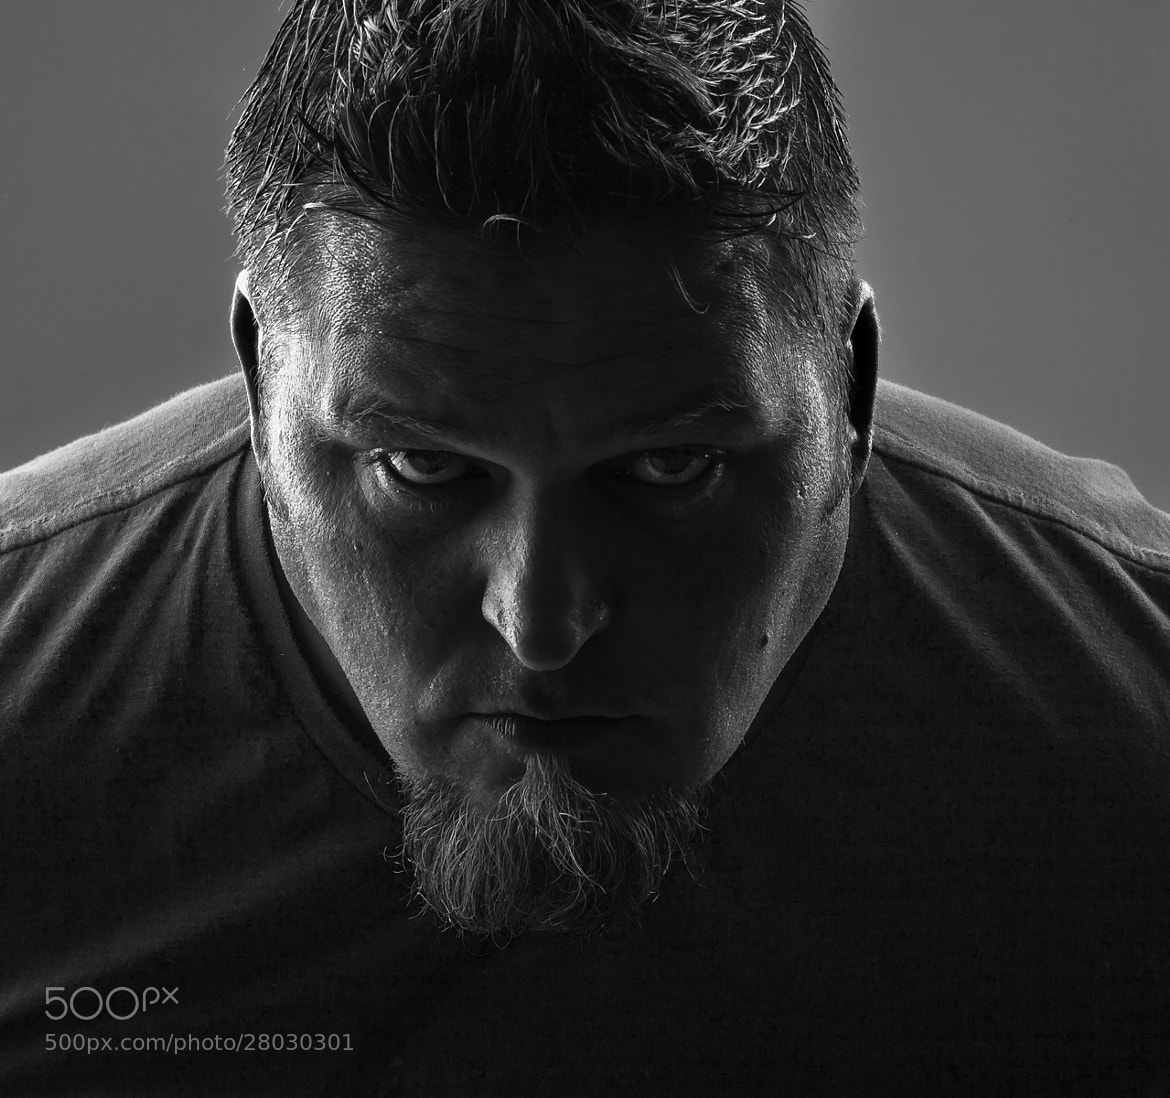 Photograph Selfportret by Bjarte Haugland on 500px